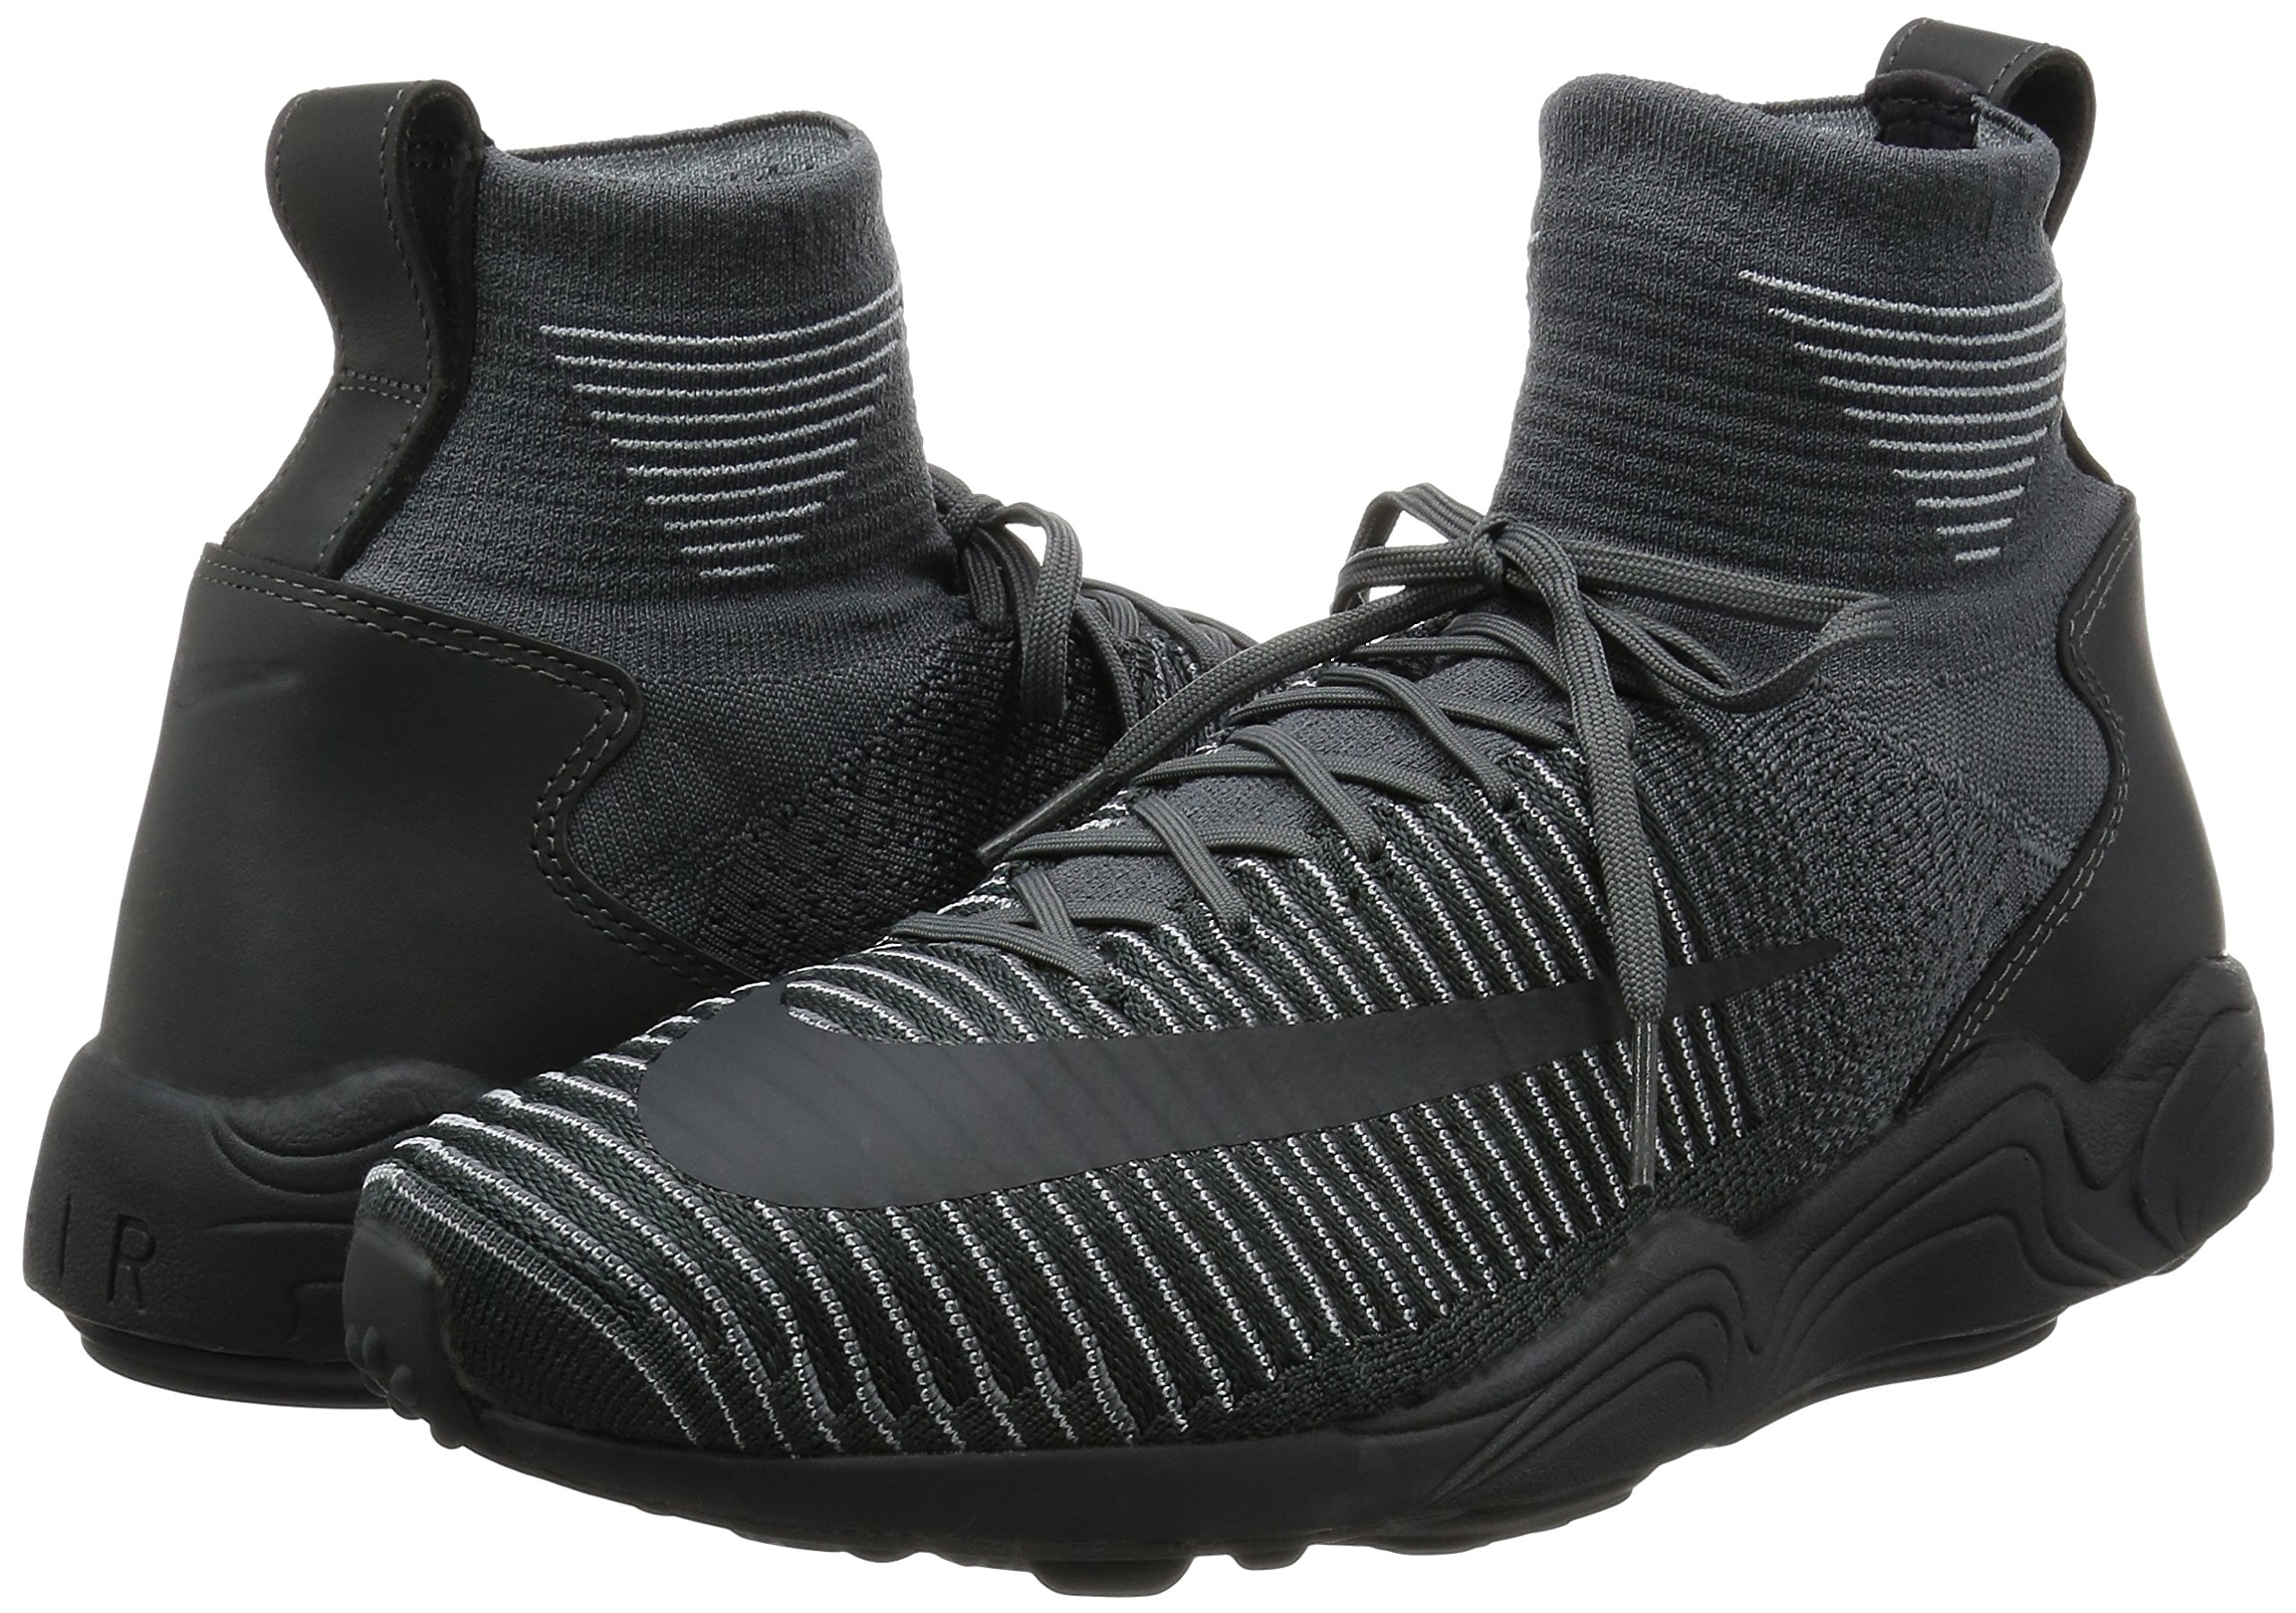 Nike Mens Zoom Mercurial XI FK Dark Grey/Anthracite Fabric Size 11 by NIKE (Image #5)